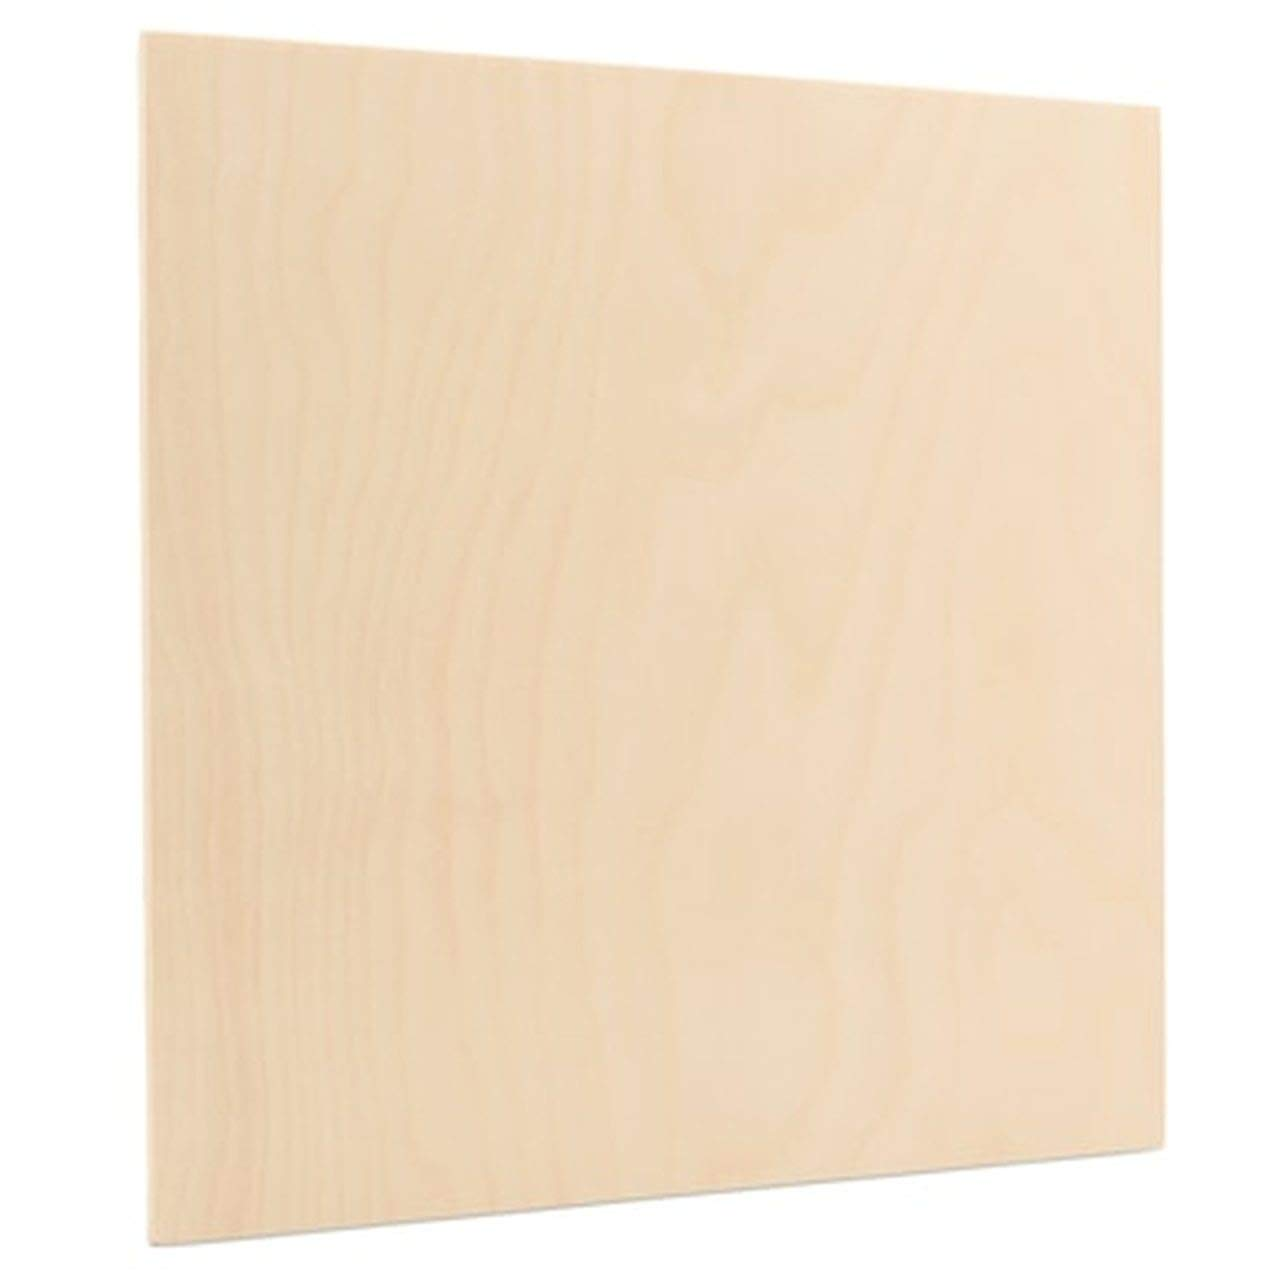 6 mm 1/4'' x 10'' x 10'' Premium Baltic Birch Plywood, B/BB Birch Veneer Sheets, Perfect for Laser, CNC Cutting and Wood Burning and DIY Projects one Clear face (Box of 24) by The Kitchen Zone